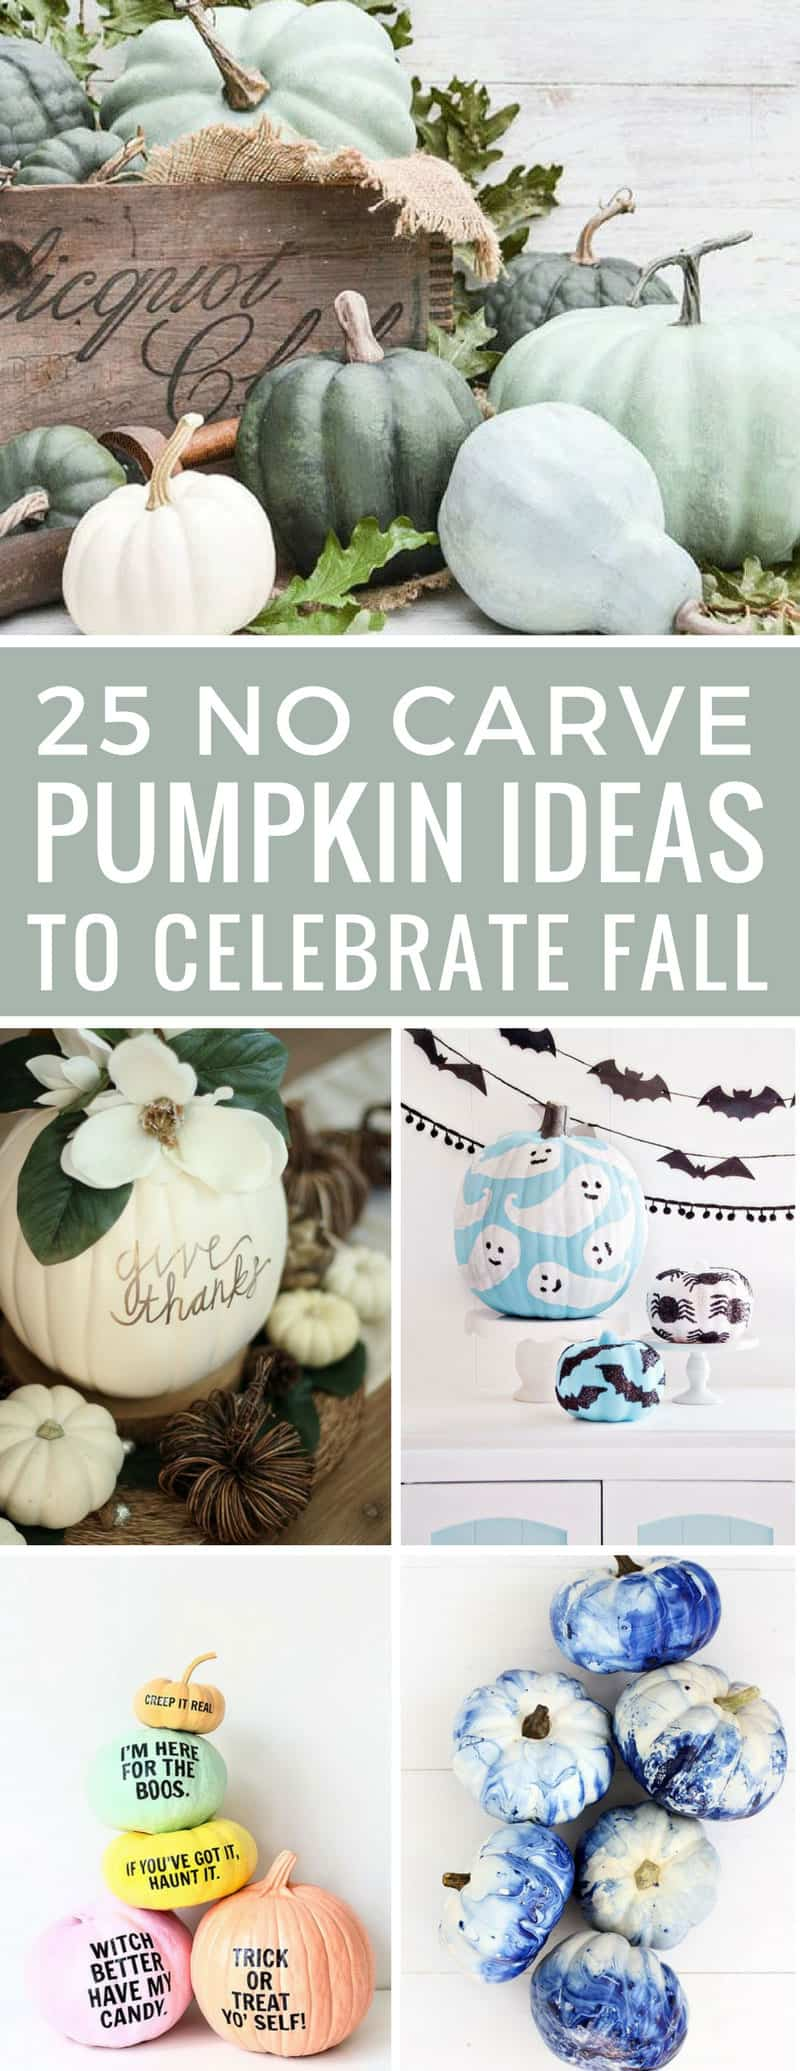 Totally in love with these pumpkin decorating ideas with no carving required! They look stunning as Fall decor! Thanks for sharing!